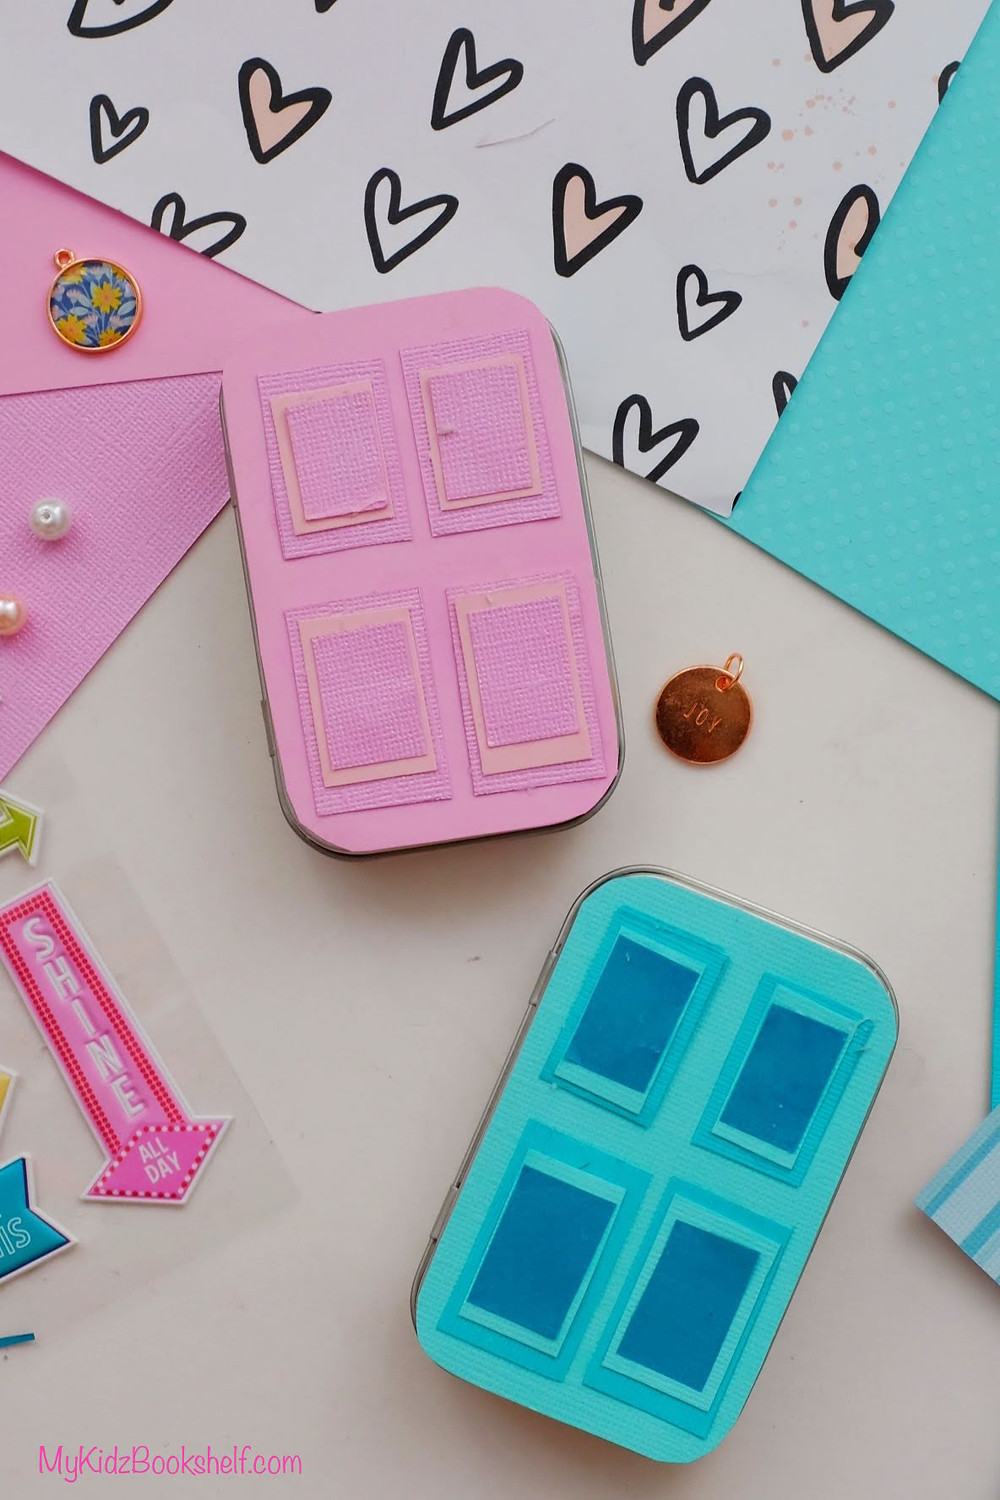 DIY - Make Your Own A-Door-Able Altoid Tin Craft for Kids of All Ages! with scrapbook paper, beads, stickers